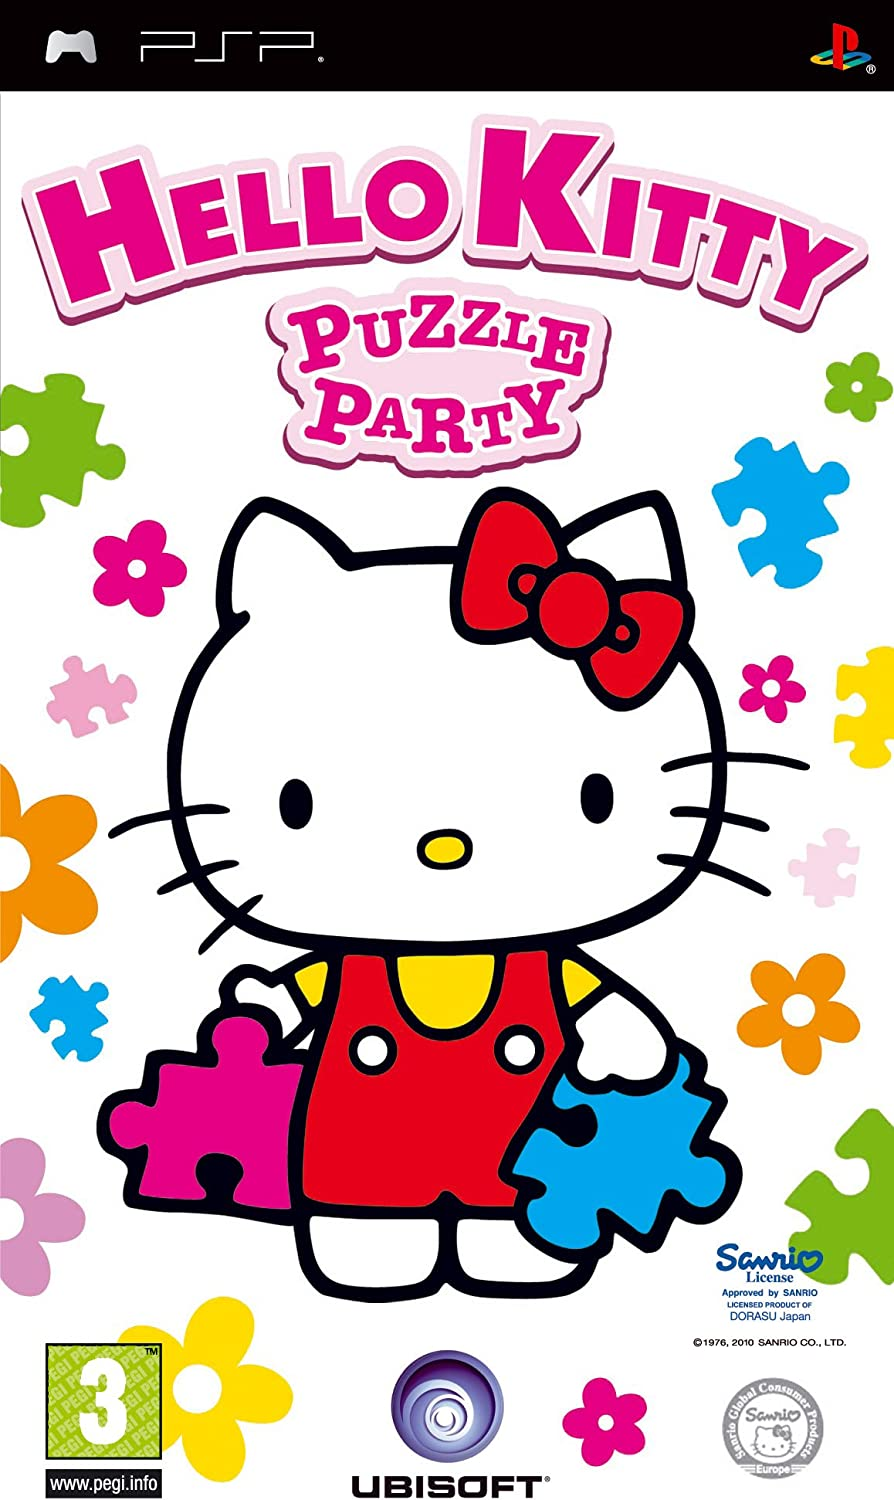 Ubisoft Hello Kitty: Puzzle Party (PSP) vídeo - Juego (PlayStation Portable (PSP), Rompecabezas)